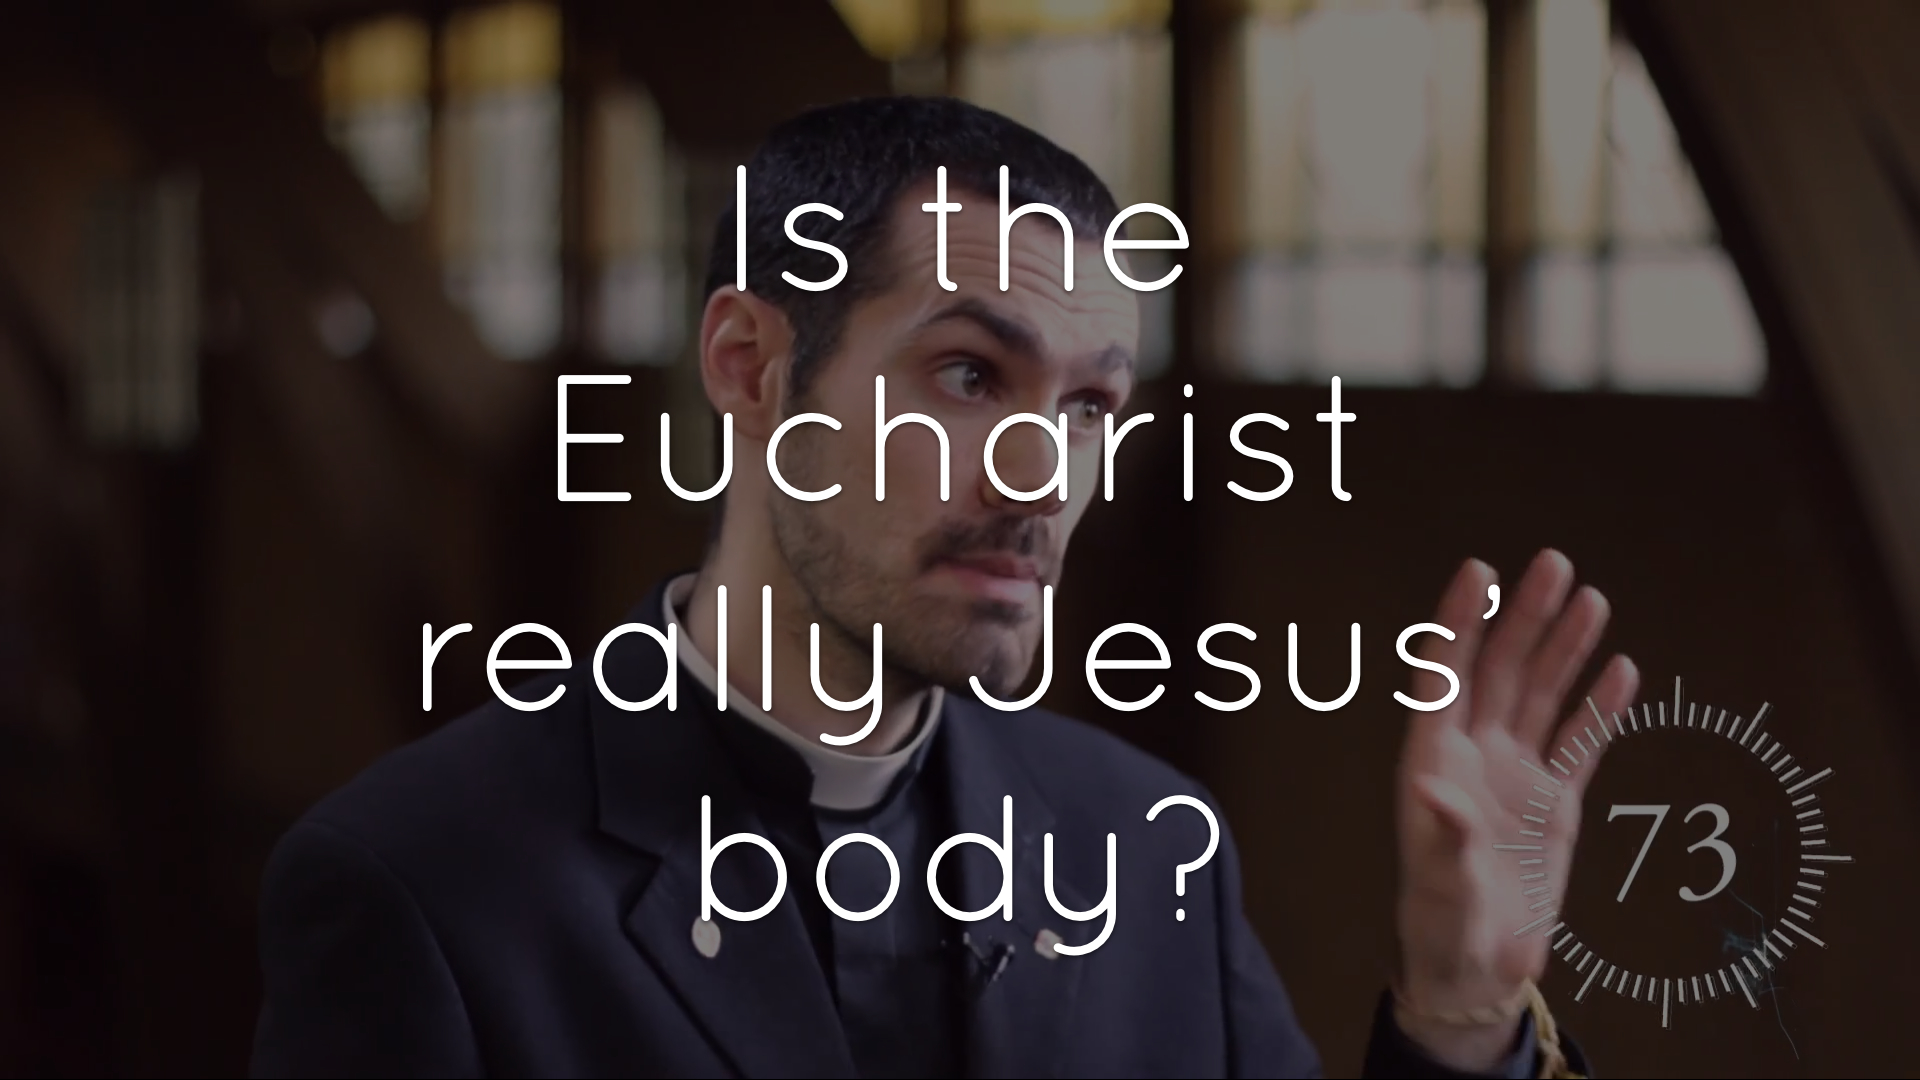 Is the Eucharist really Jesus' body?